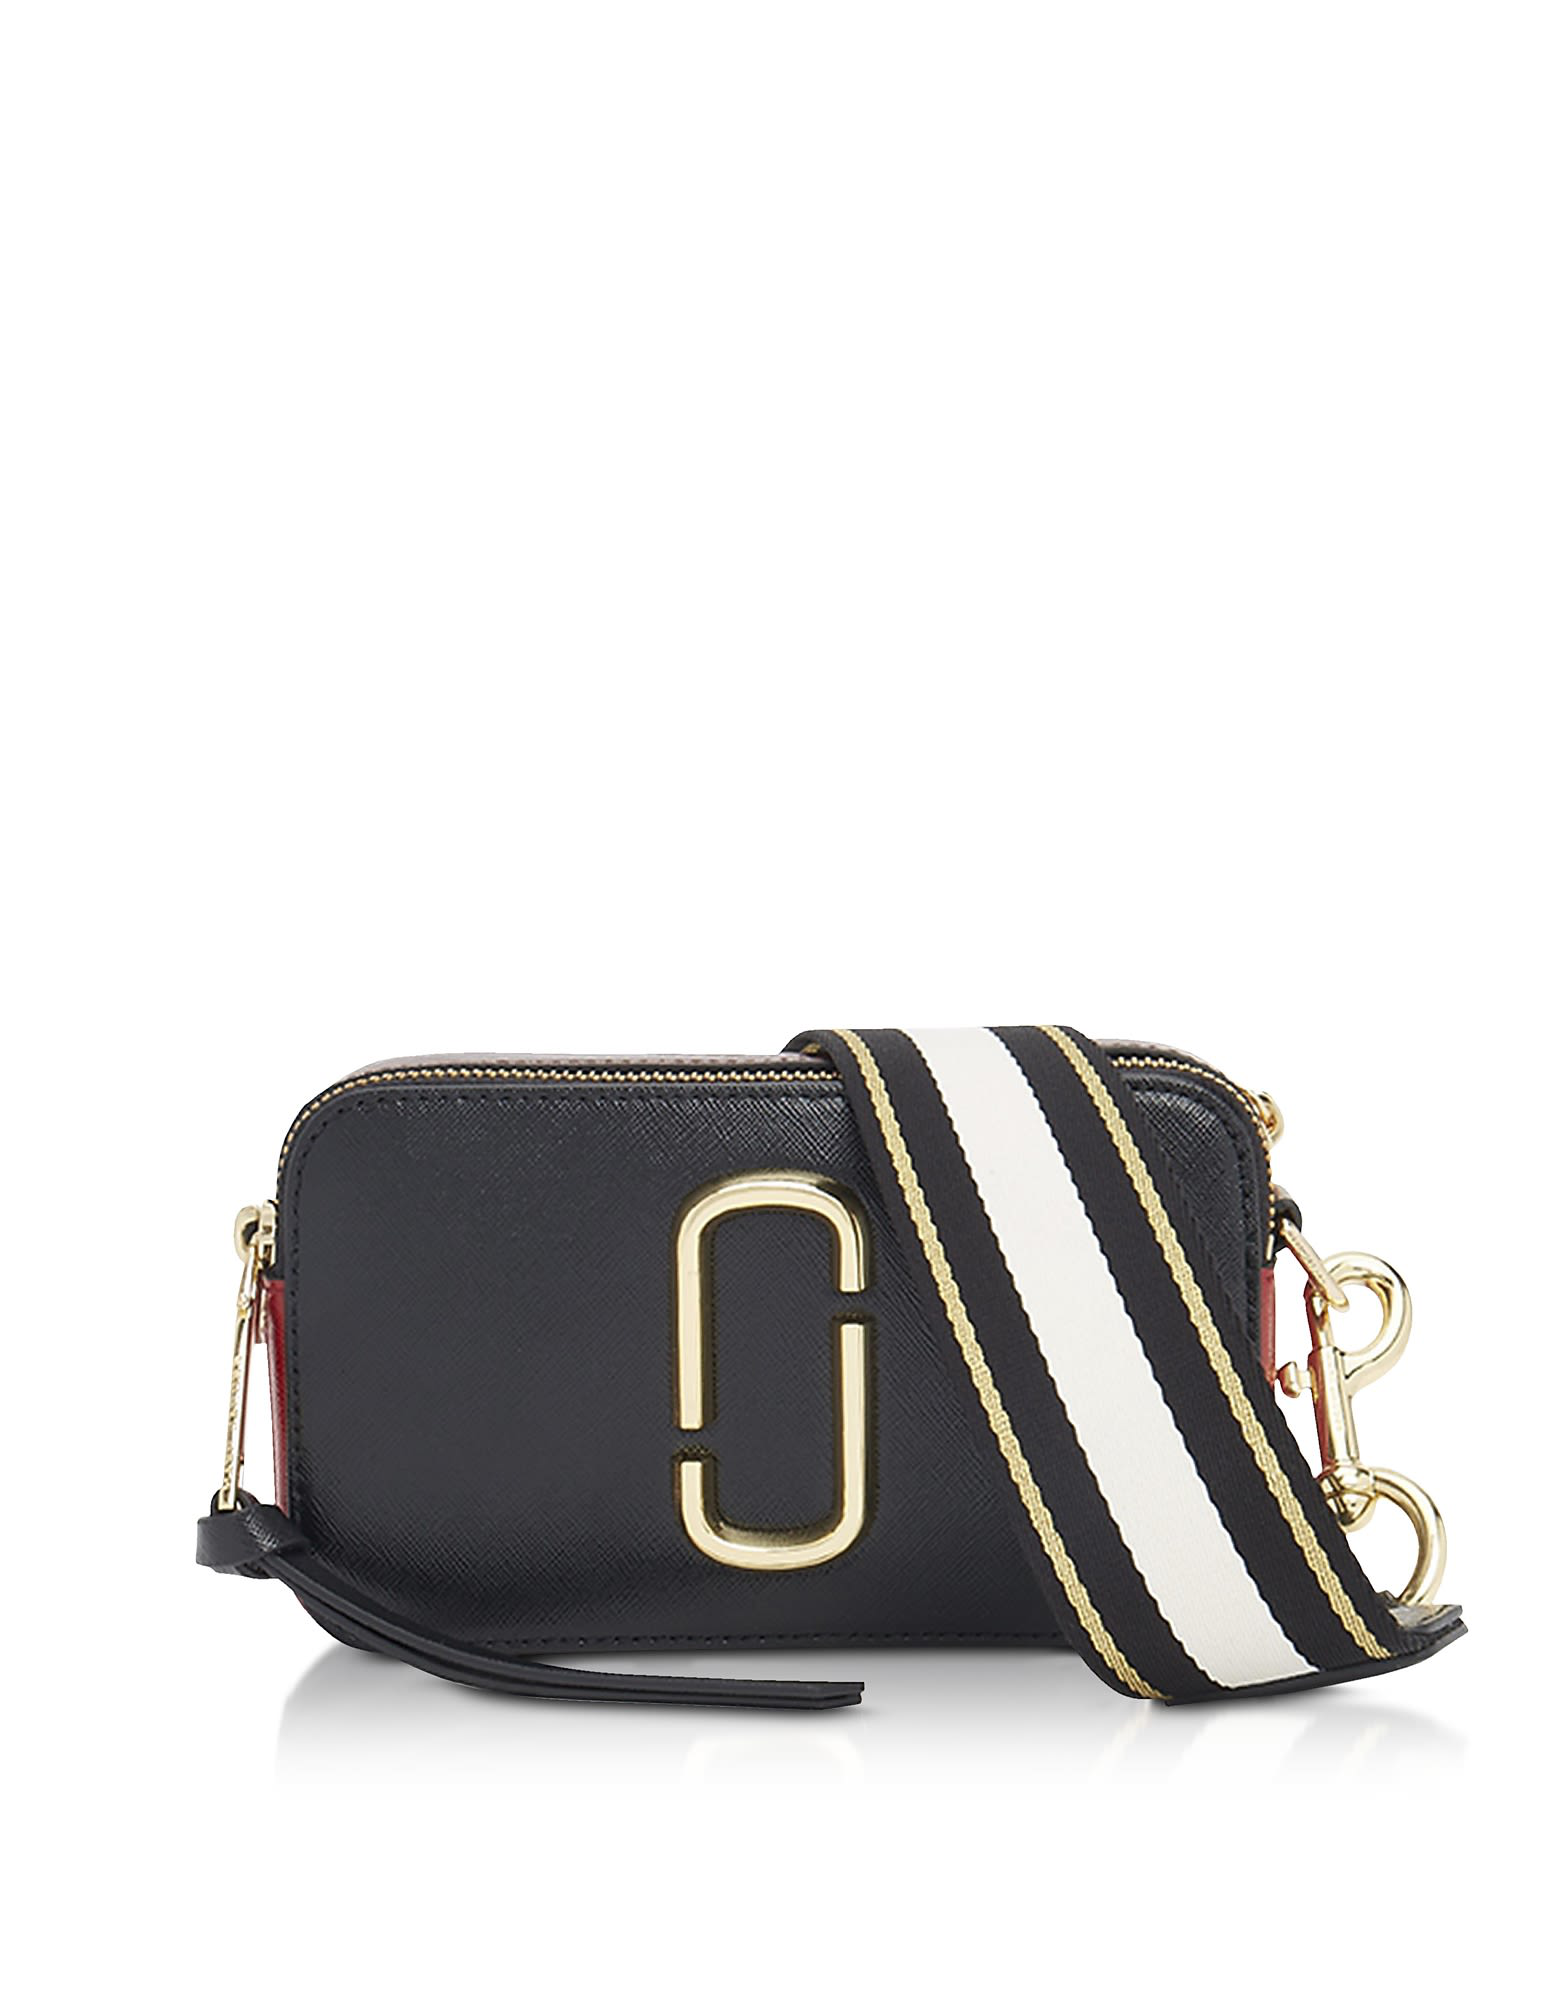 84e308ae0a45 Marc Jacobs Logo Strap Snapshot Camera Bag In Black Red. Italist.com